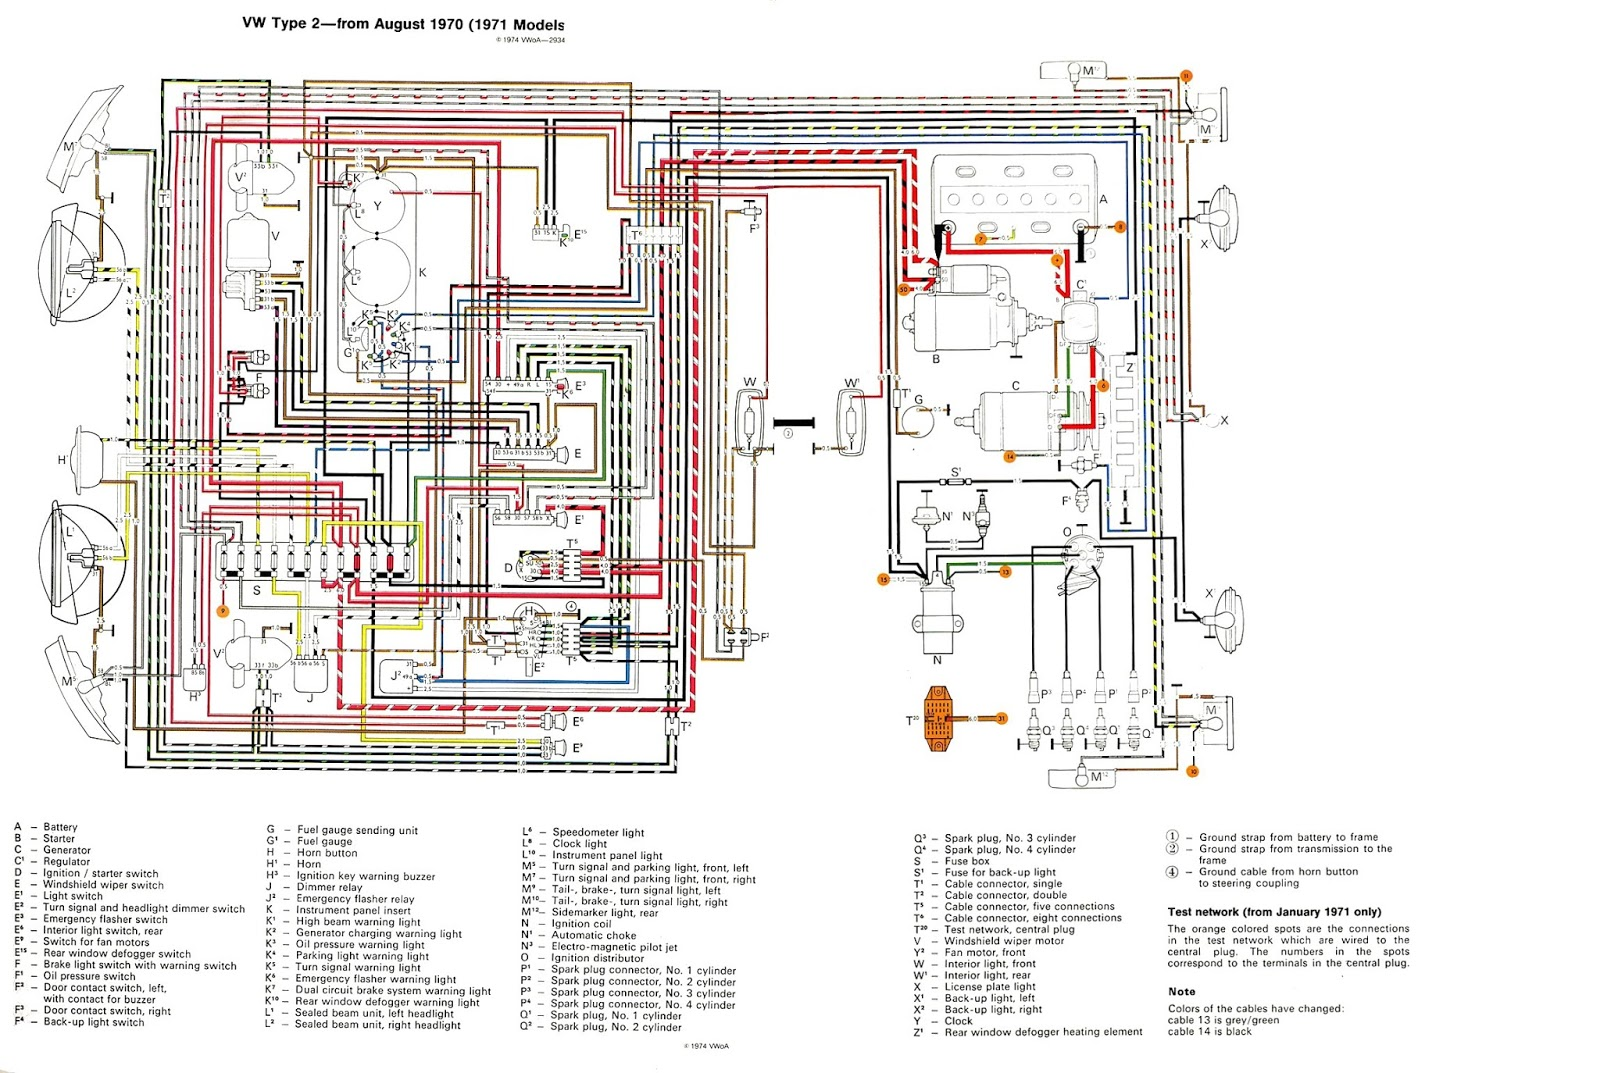 baybus_71 1949 vw wiring diagram on 1949 download wirning diagrams vw t5 wiring diagram download at panicattacktreatment.co